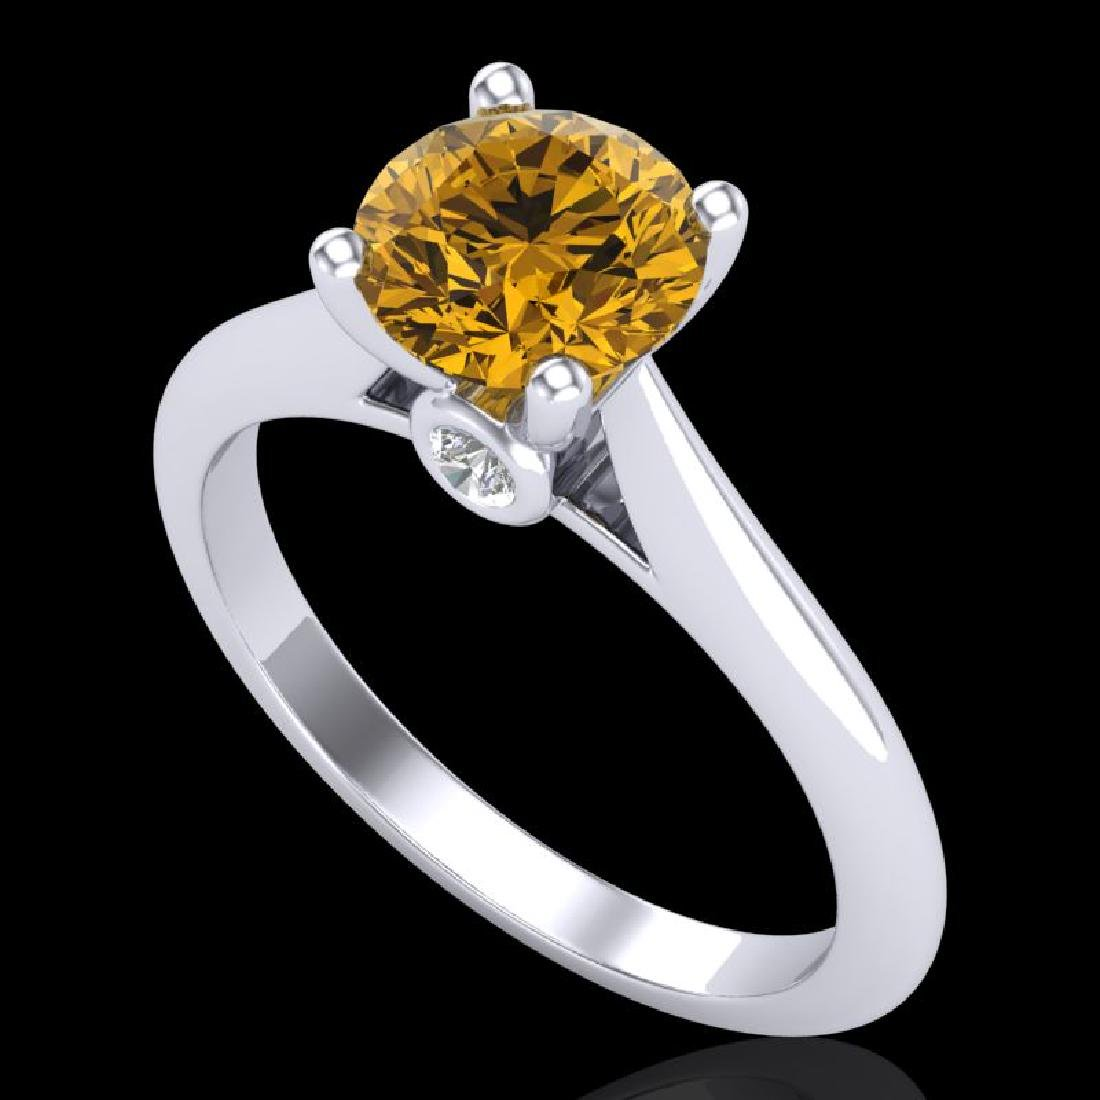 1.36 CTW Intense Fancy Yellow Diamond Engagement Art